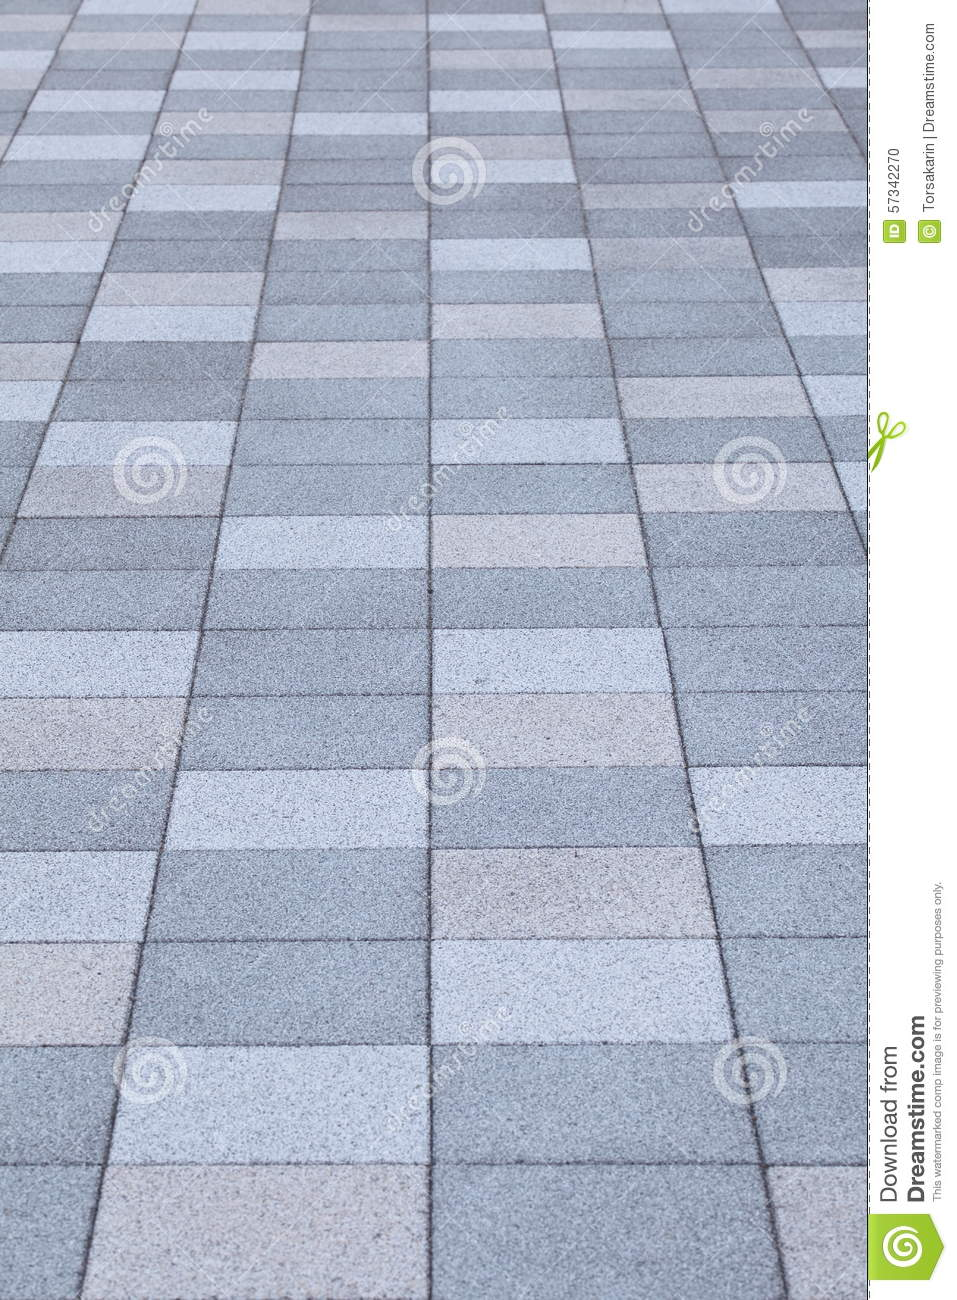 Concrete block floor stock photo image 57342270 for Concrete block floor